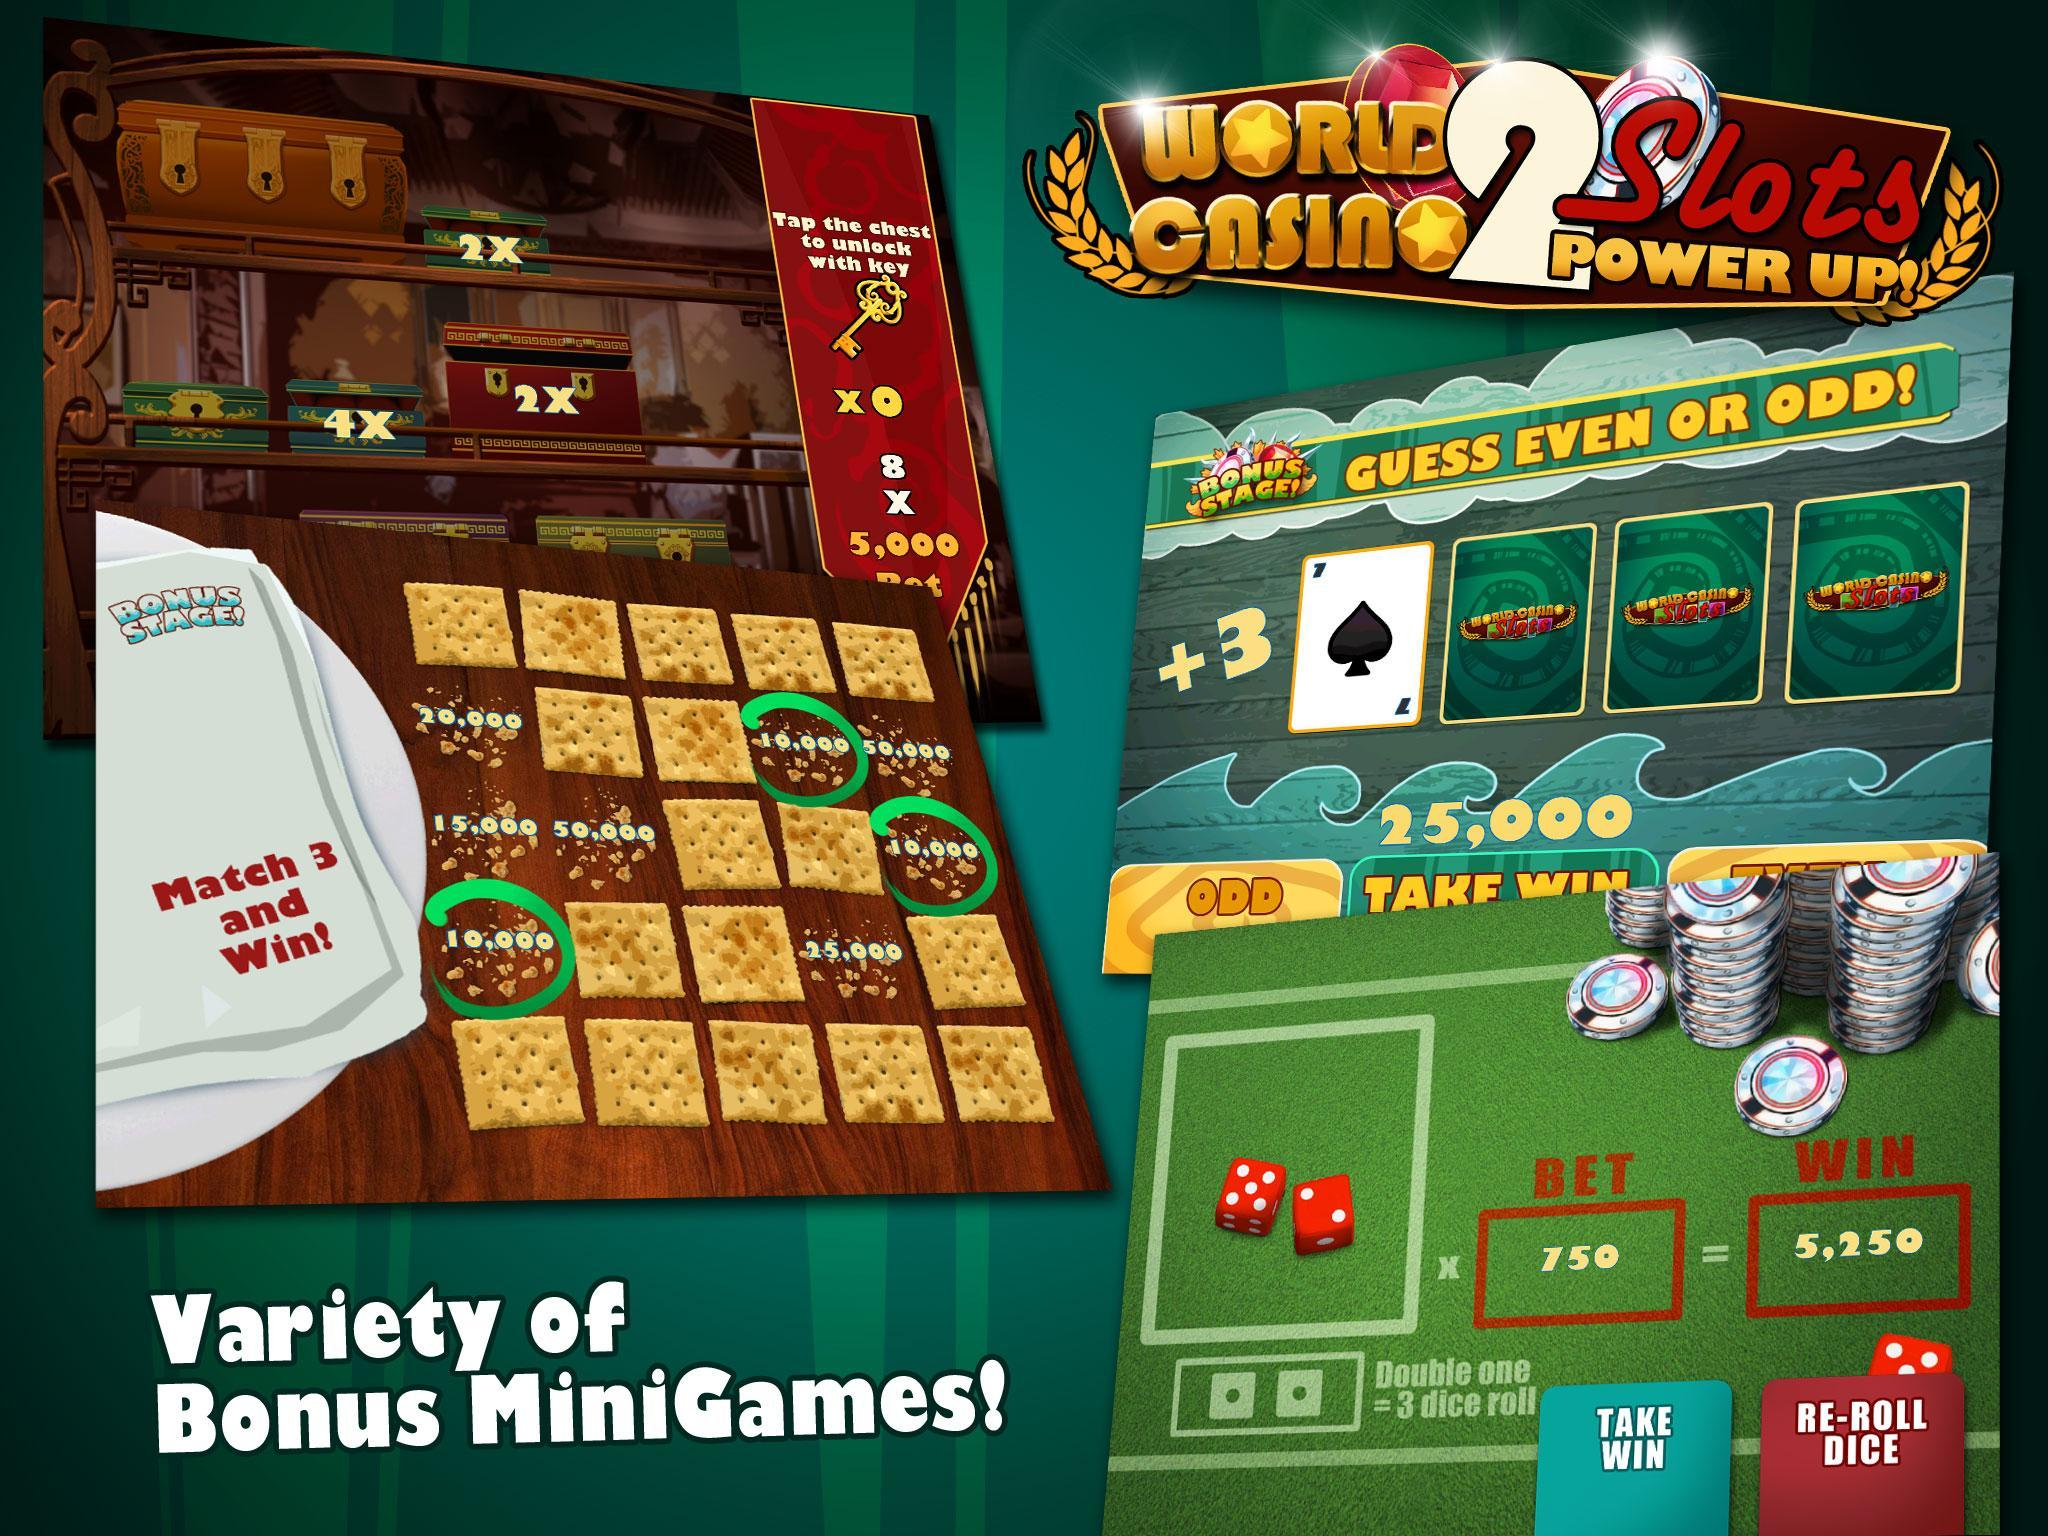 Slots Power Up 2 World Casino poster